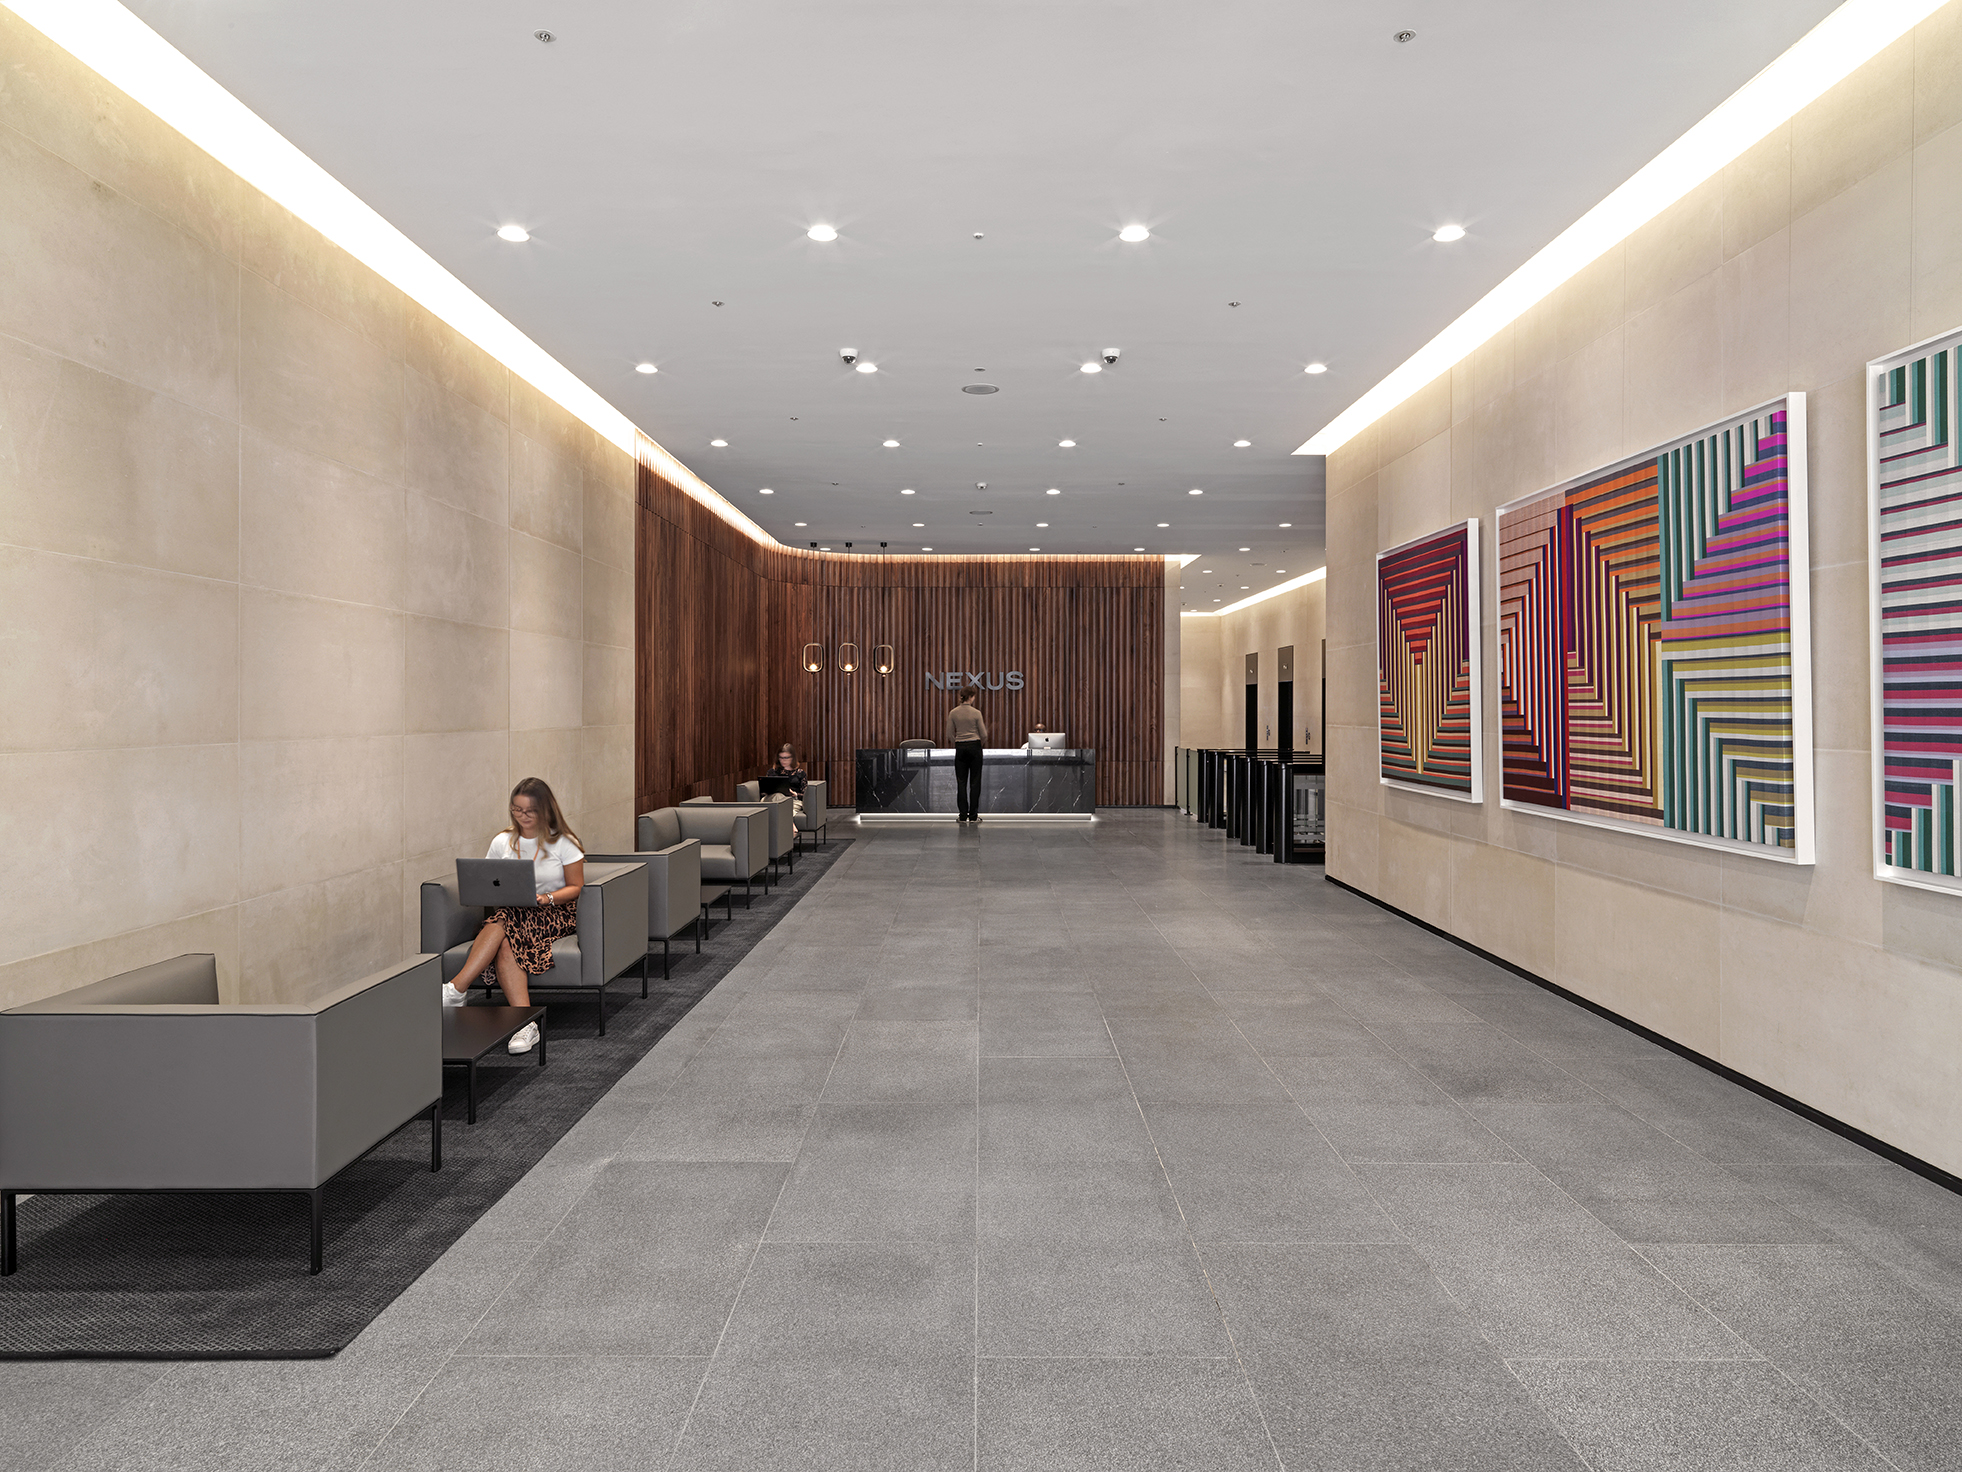 Lobby of a newly renovated office building